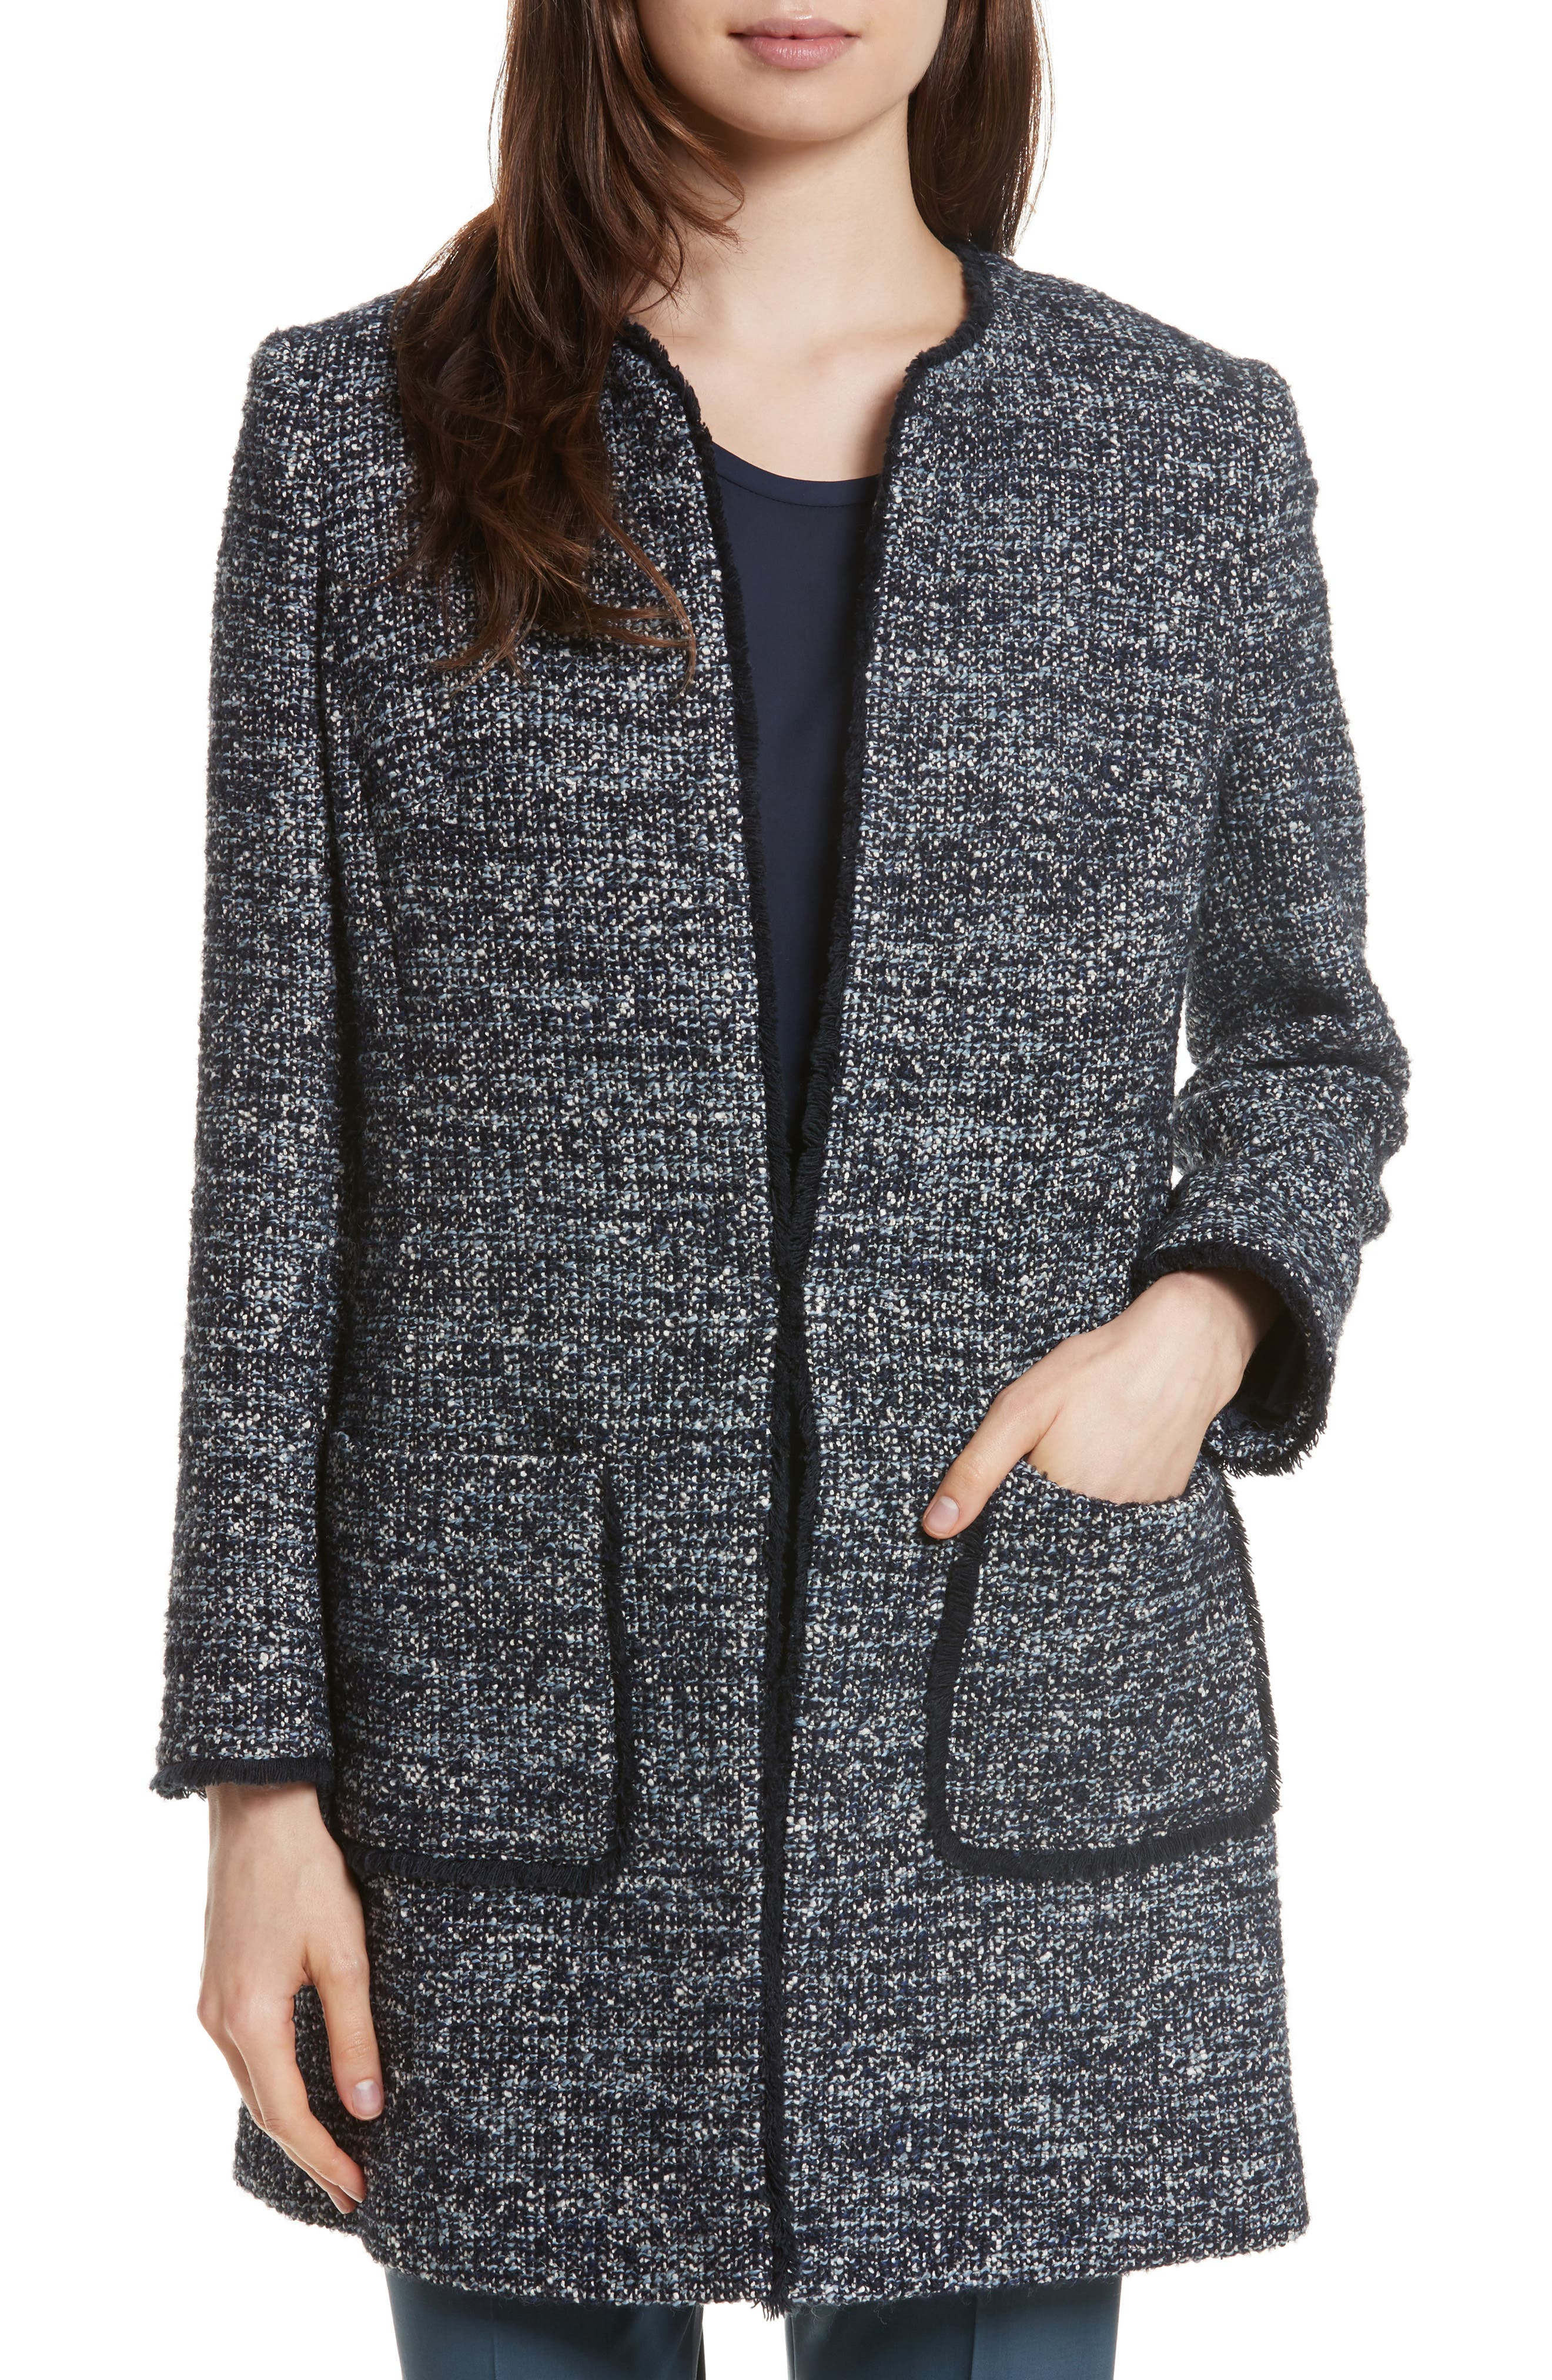 Alice Tweed Jacket,                             Main thumbnail 1, color,                             Navy/ Pale Blue